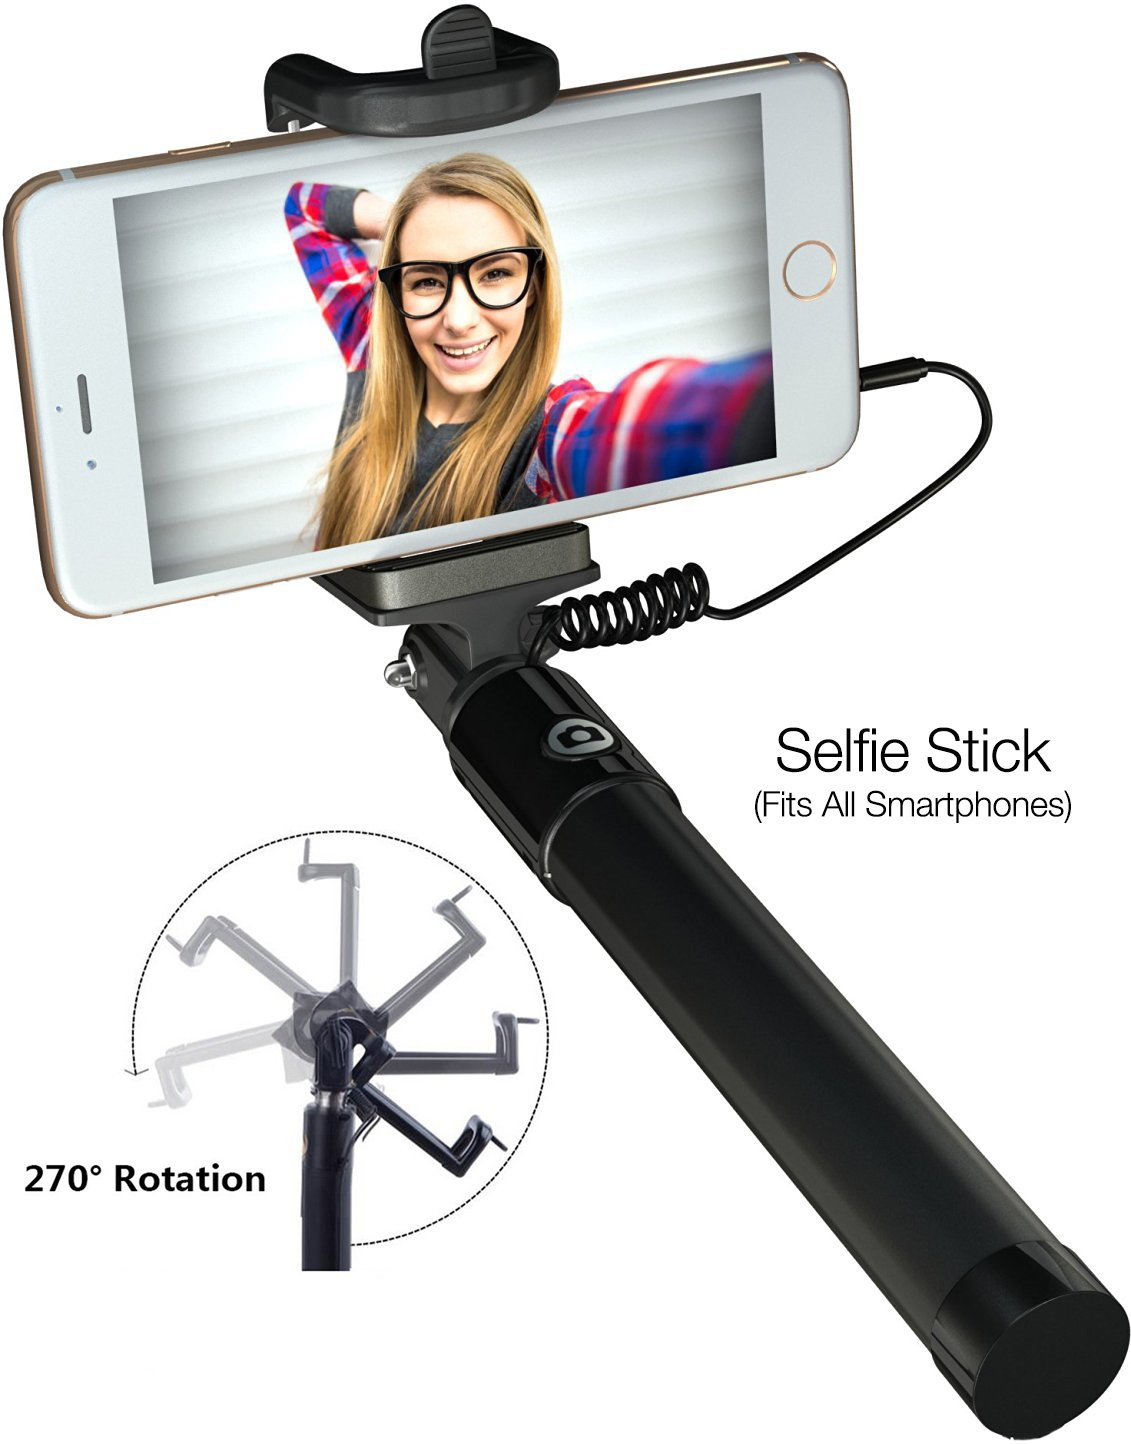 Flexible Tripod /& Phone Mount fits iPhone 4 4s 5 5s 6 6s 7 iPad Samsung /& Android Smartphones Eye-Pro iPhone Camera Accessories Lens Kit: Fisheye Wide Angle Macro Lenses Selfie Stick Remote Shutter